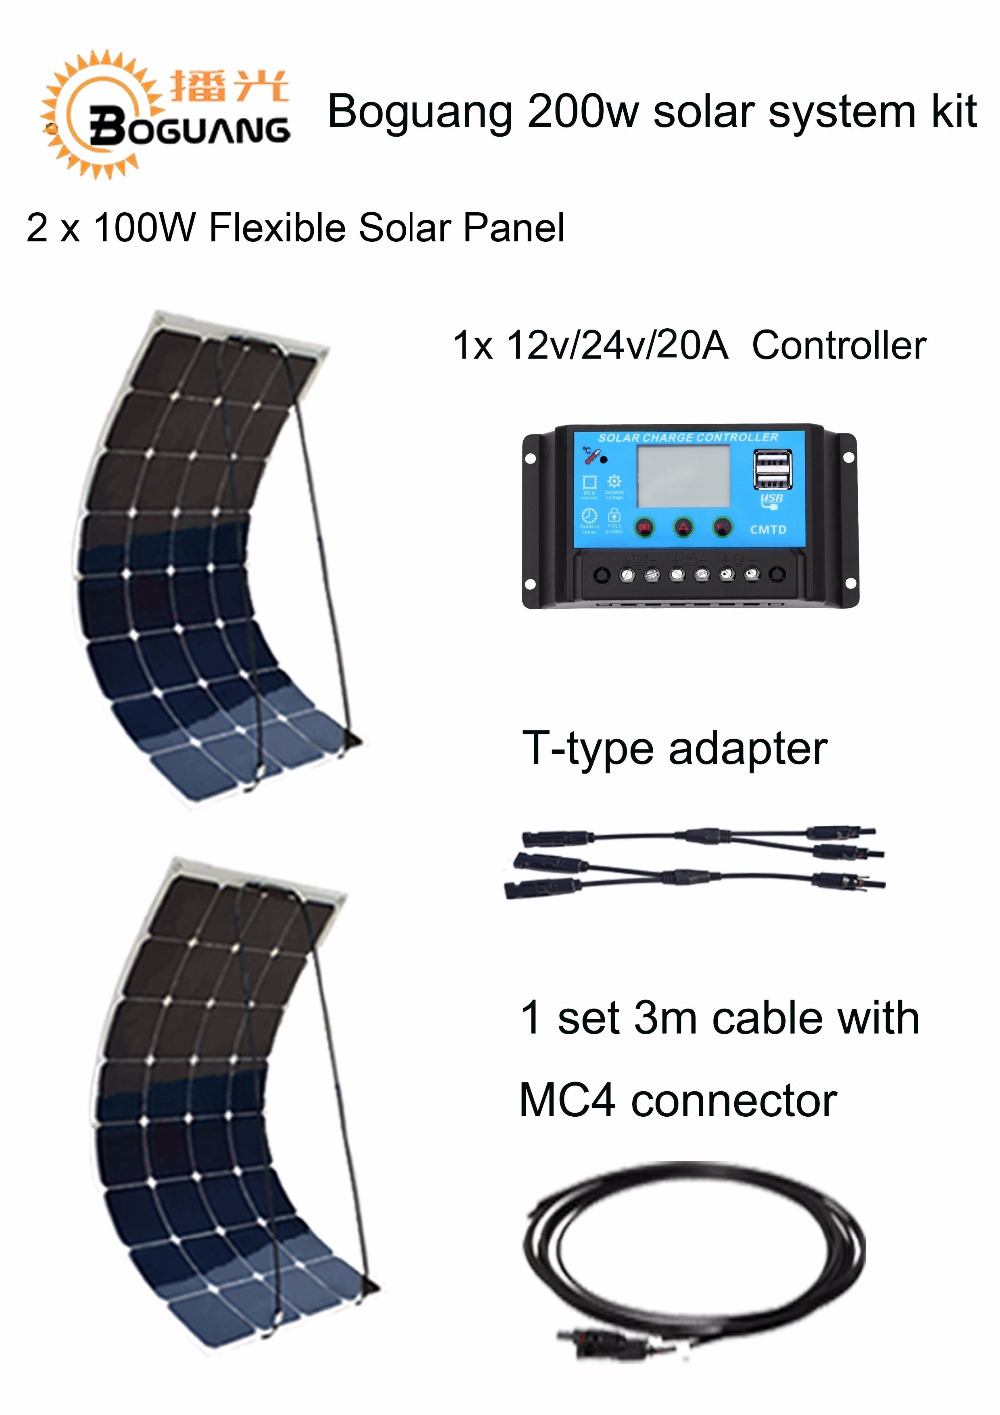 BOGUANG 200W Solar panel System 2pcs 100W efficient PV flexible 12V solar panel 20A solar controller cable for DIY RV Boat Kits 2pcs 4pcs mono 20v 100w flexible solar panel modules for fishing boat car rv 12v battery solar charger 36 solar cells 100w